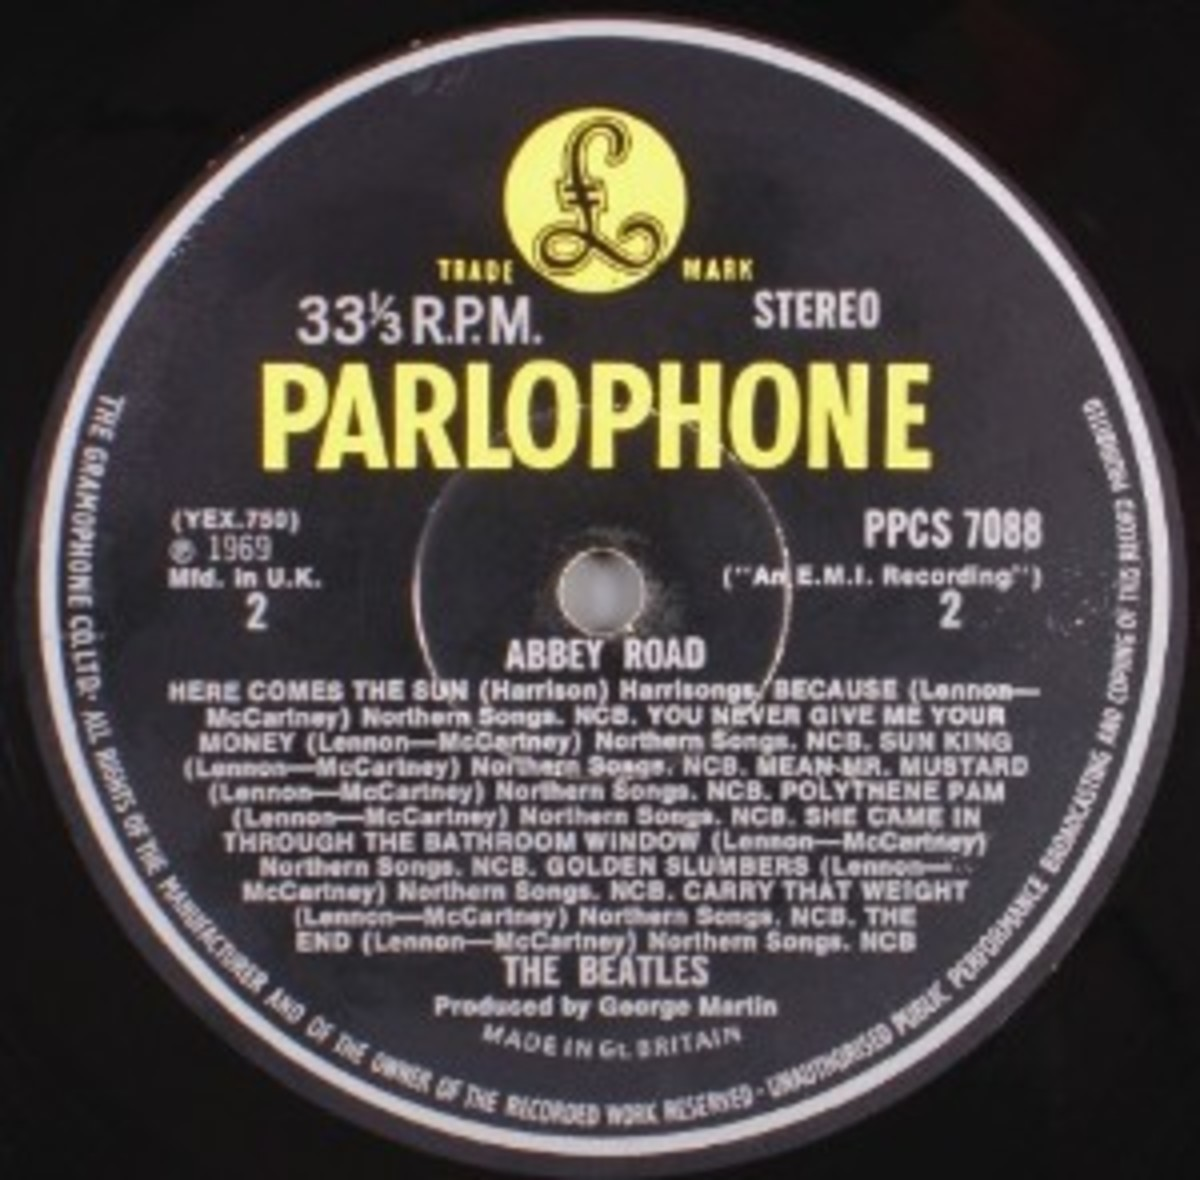 Abbey Road (Parlophone P-PCS 7088) 1969